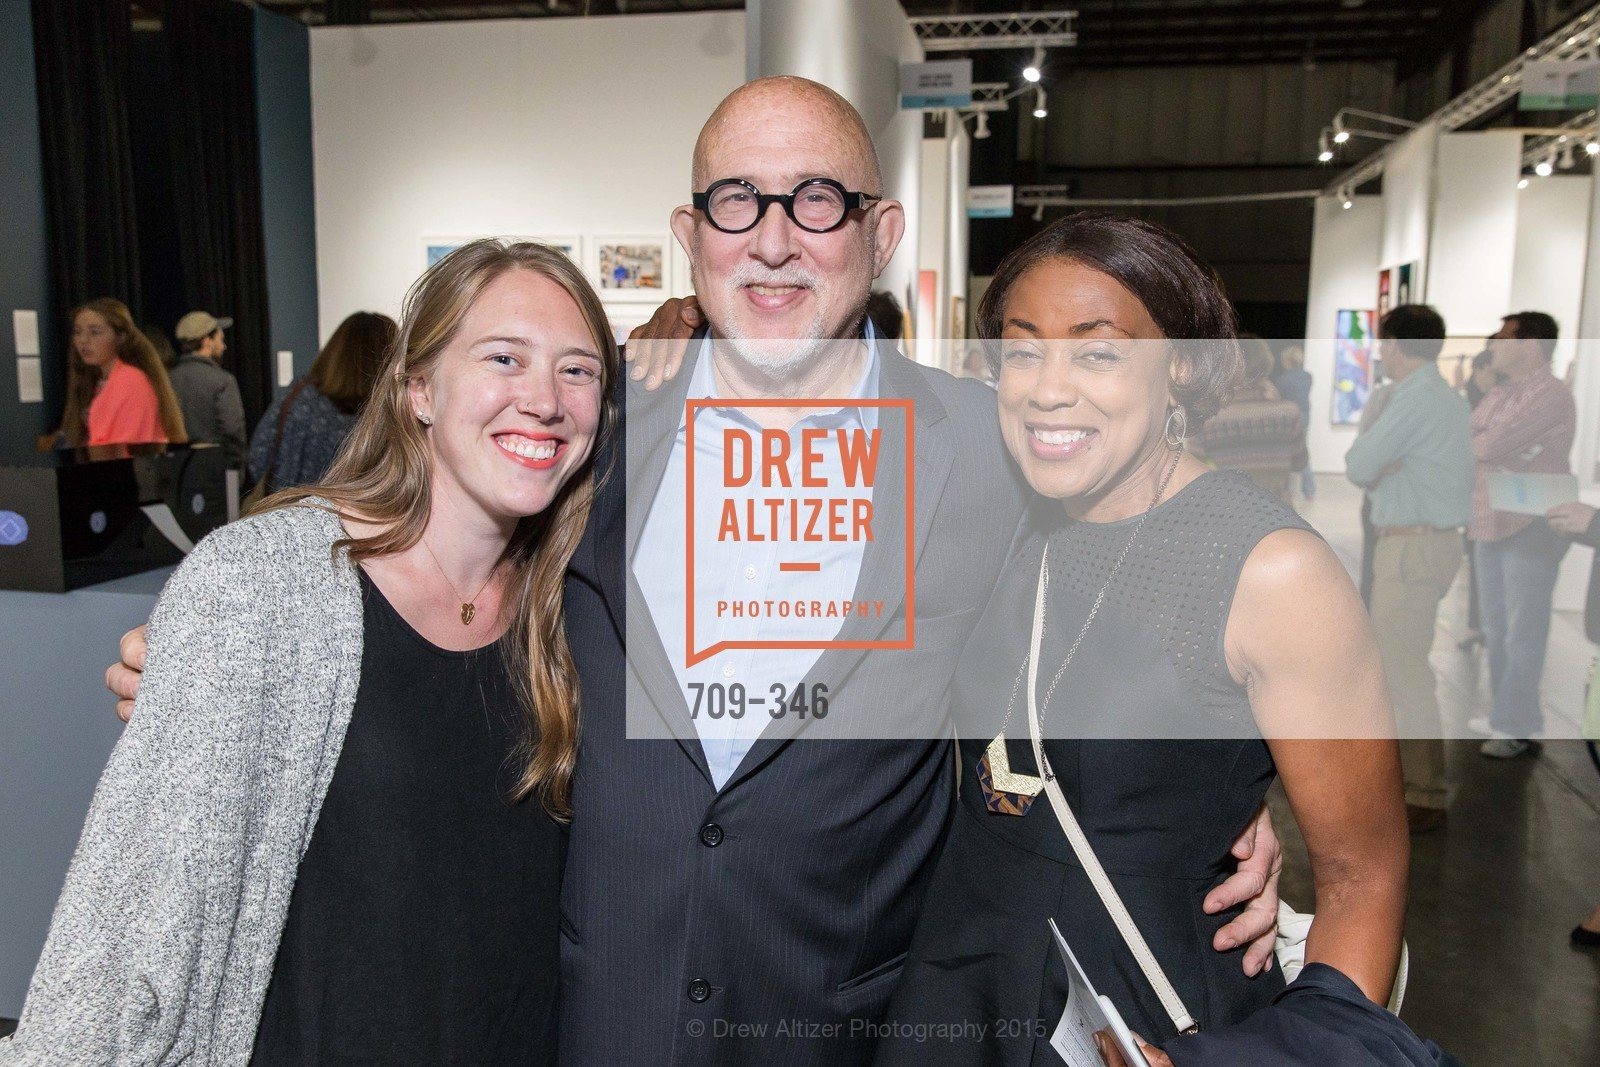 Amber Jean Young, Robert Shimshak, Maria Jenson, Art Miami Presents: Art Silicon Valley, San Mateo County Event Center. 1346 Saratoga Dr, October 8th, 2015,Drew Altizer, Drew Altizer Photography, full-service agency, private events, San Francisco photographer, photographer california